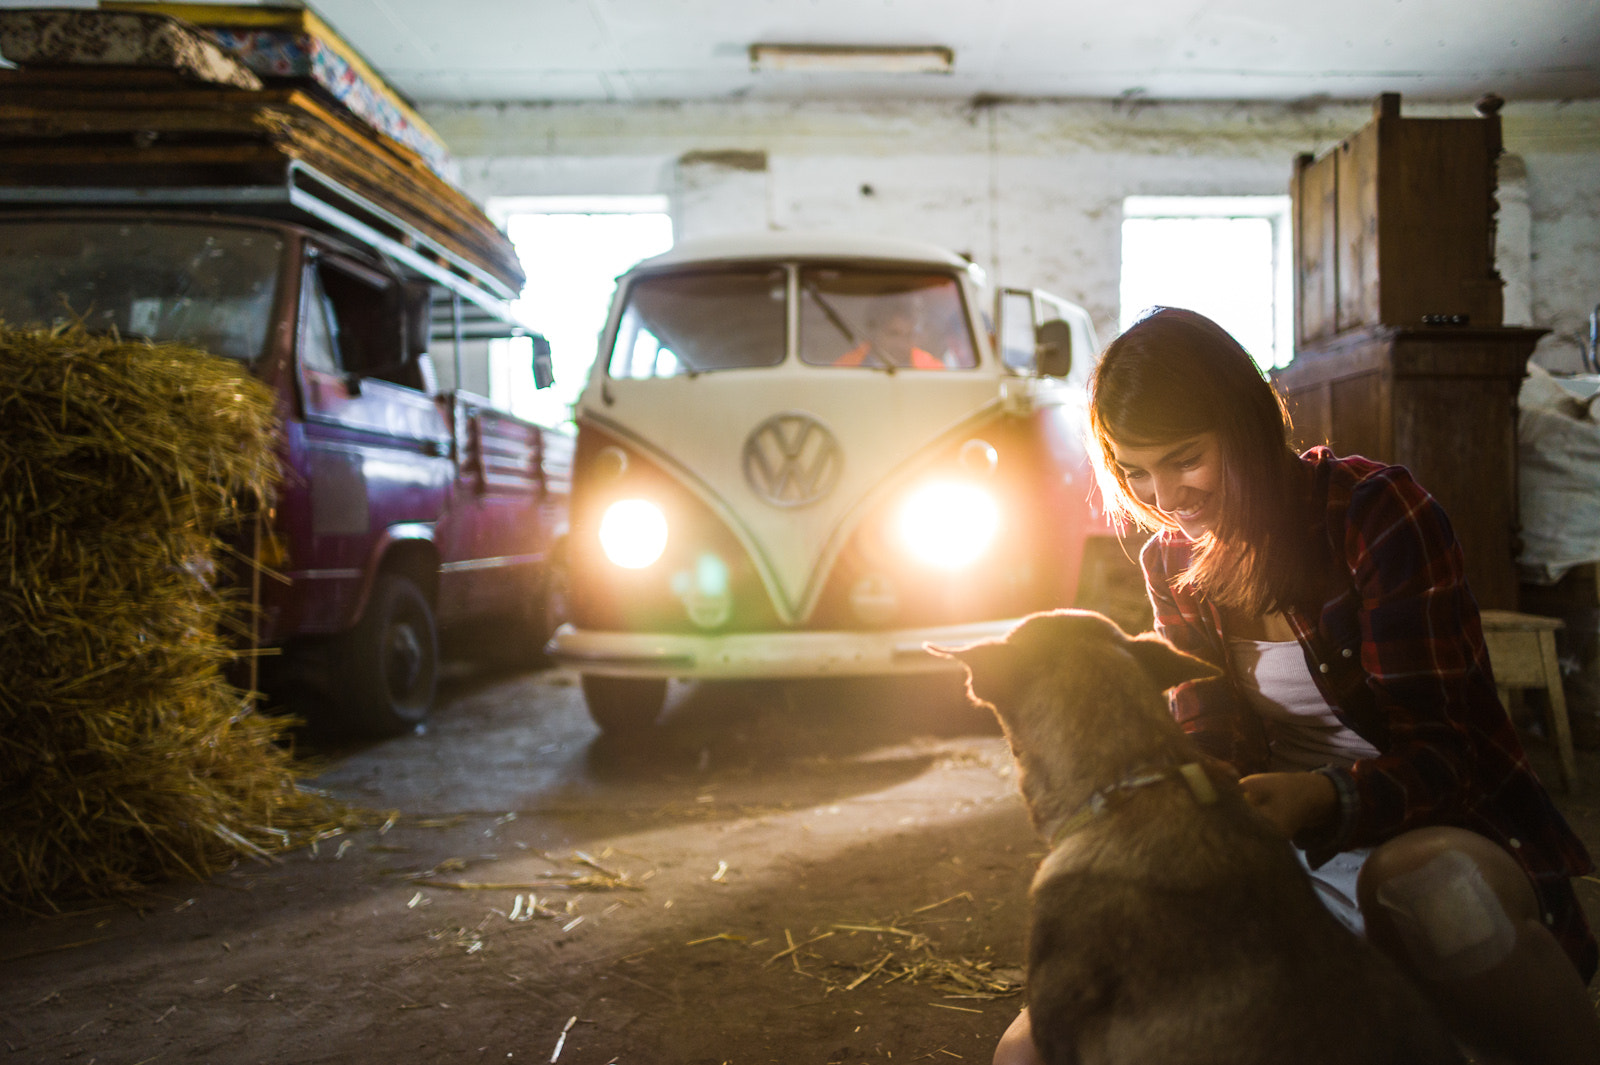 Photograph Barn find – Volkswagen T1 by Peter Lueck on 500px